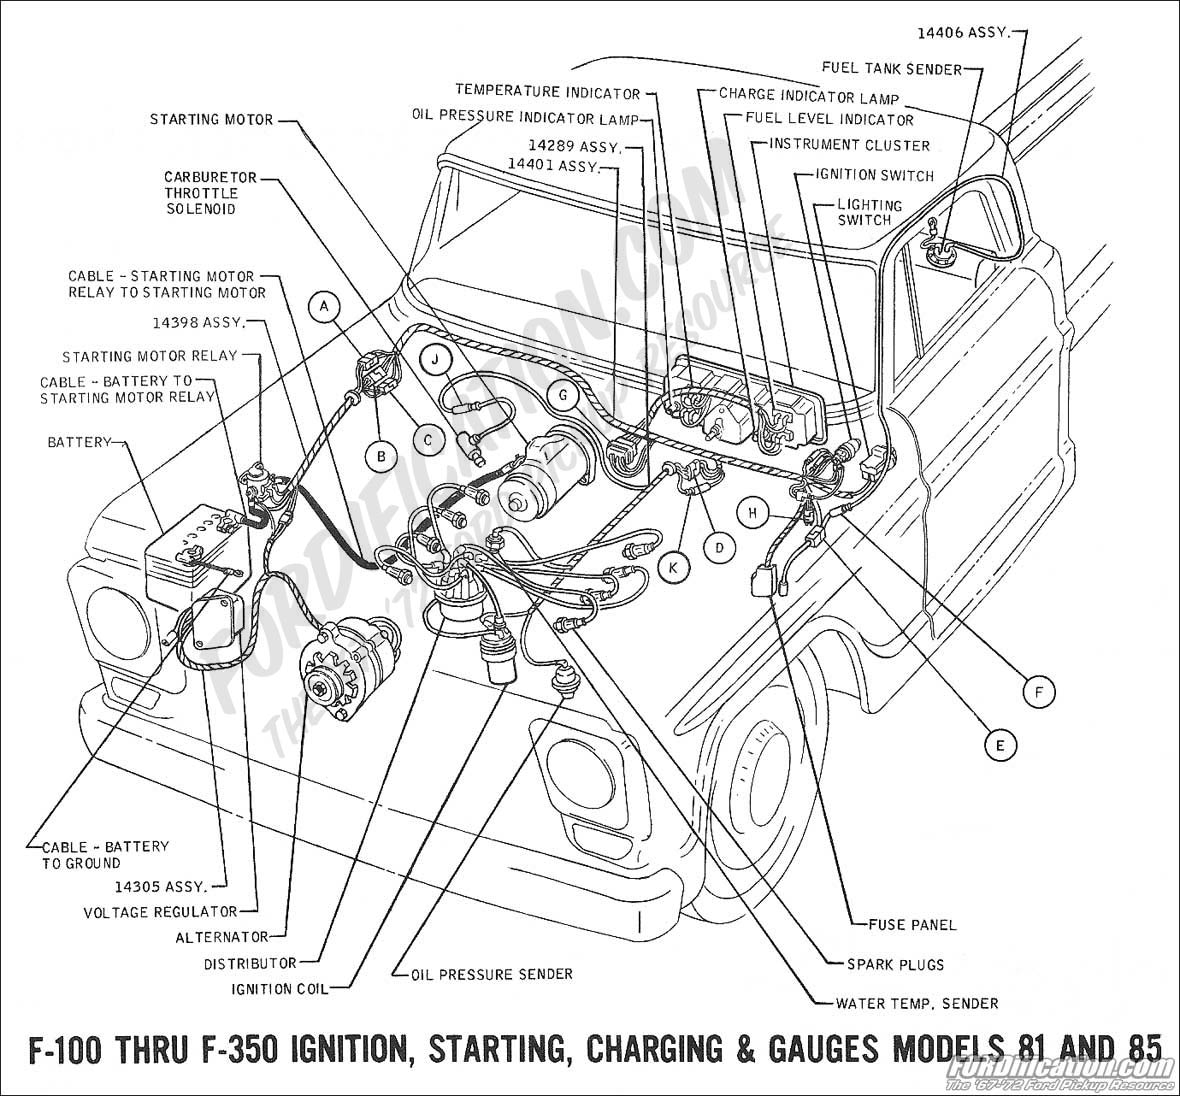 hight resolution of 1969 ford f100 wiring ford truck technical drawings and schematics section h wiring1969 f 100 thru f 350 ignition